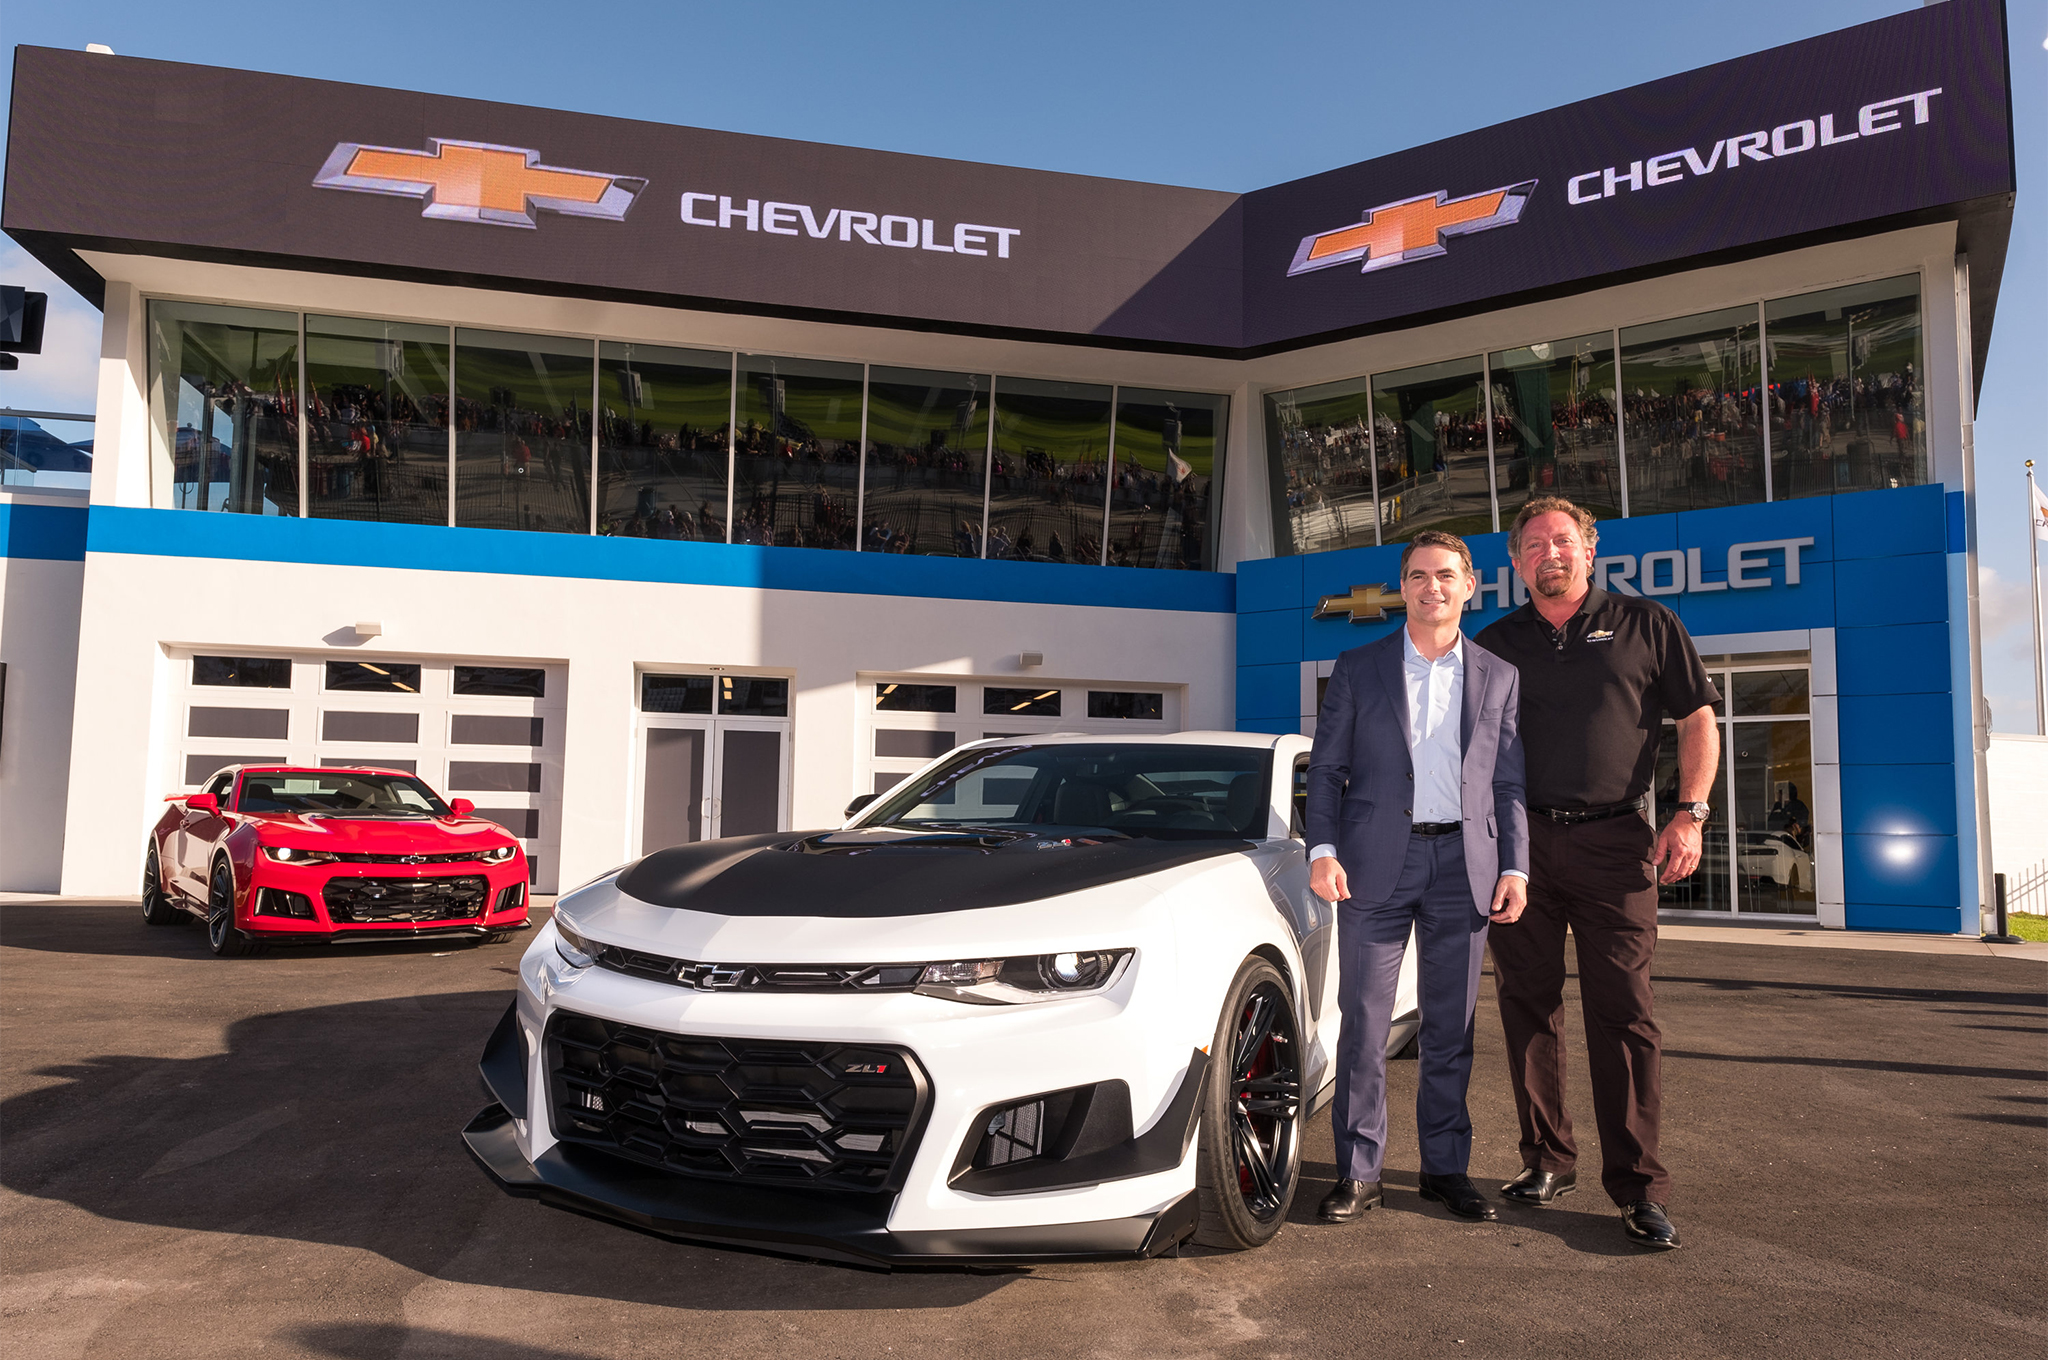 2018-Chevrolet-Camaro-ZL1-1LE-reveal-Jeff-Gordon-and-Al-Oppenheiser